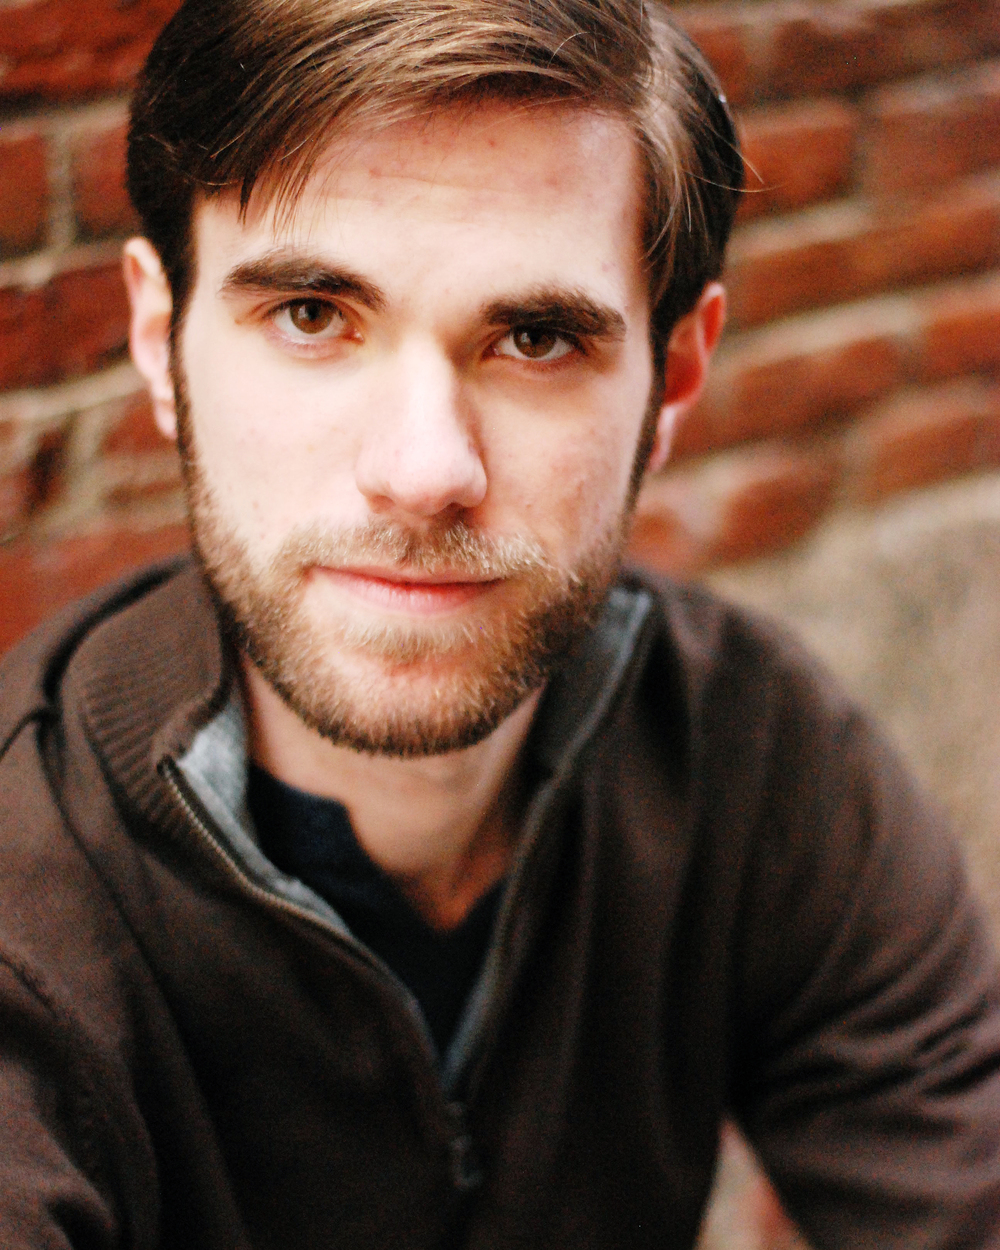 Ben Heath (Woody/Rick/Policeman) is excited to be making his debut with Bad Habit Productions. He graduated from Emerson College in 2014 with a degree in Acting. Some of his favorite area credits include Banquo in Macbeth (Brown Box Theatre Project), and Don Pedro in Much Ado About Nothing (Boston Theater Company). Ben's bad habit is being overly competitive at board games.